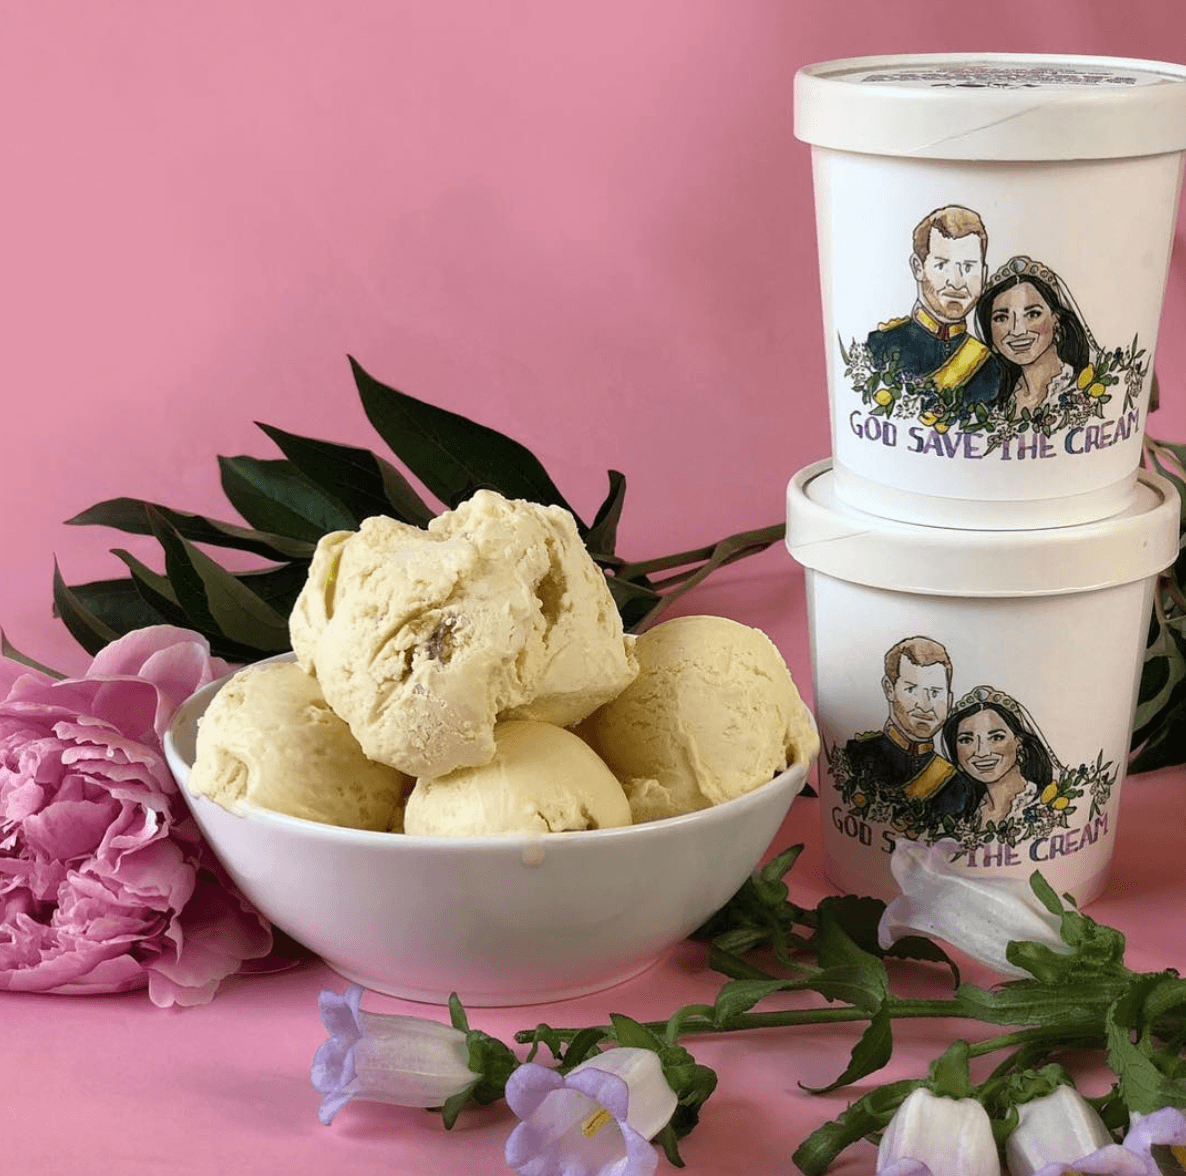 Royal wedding ice cream